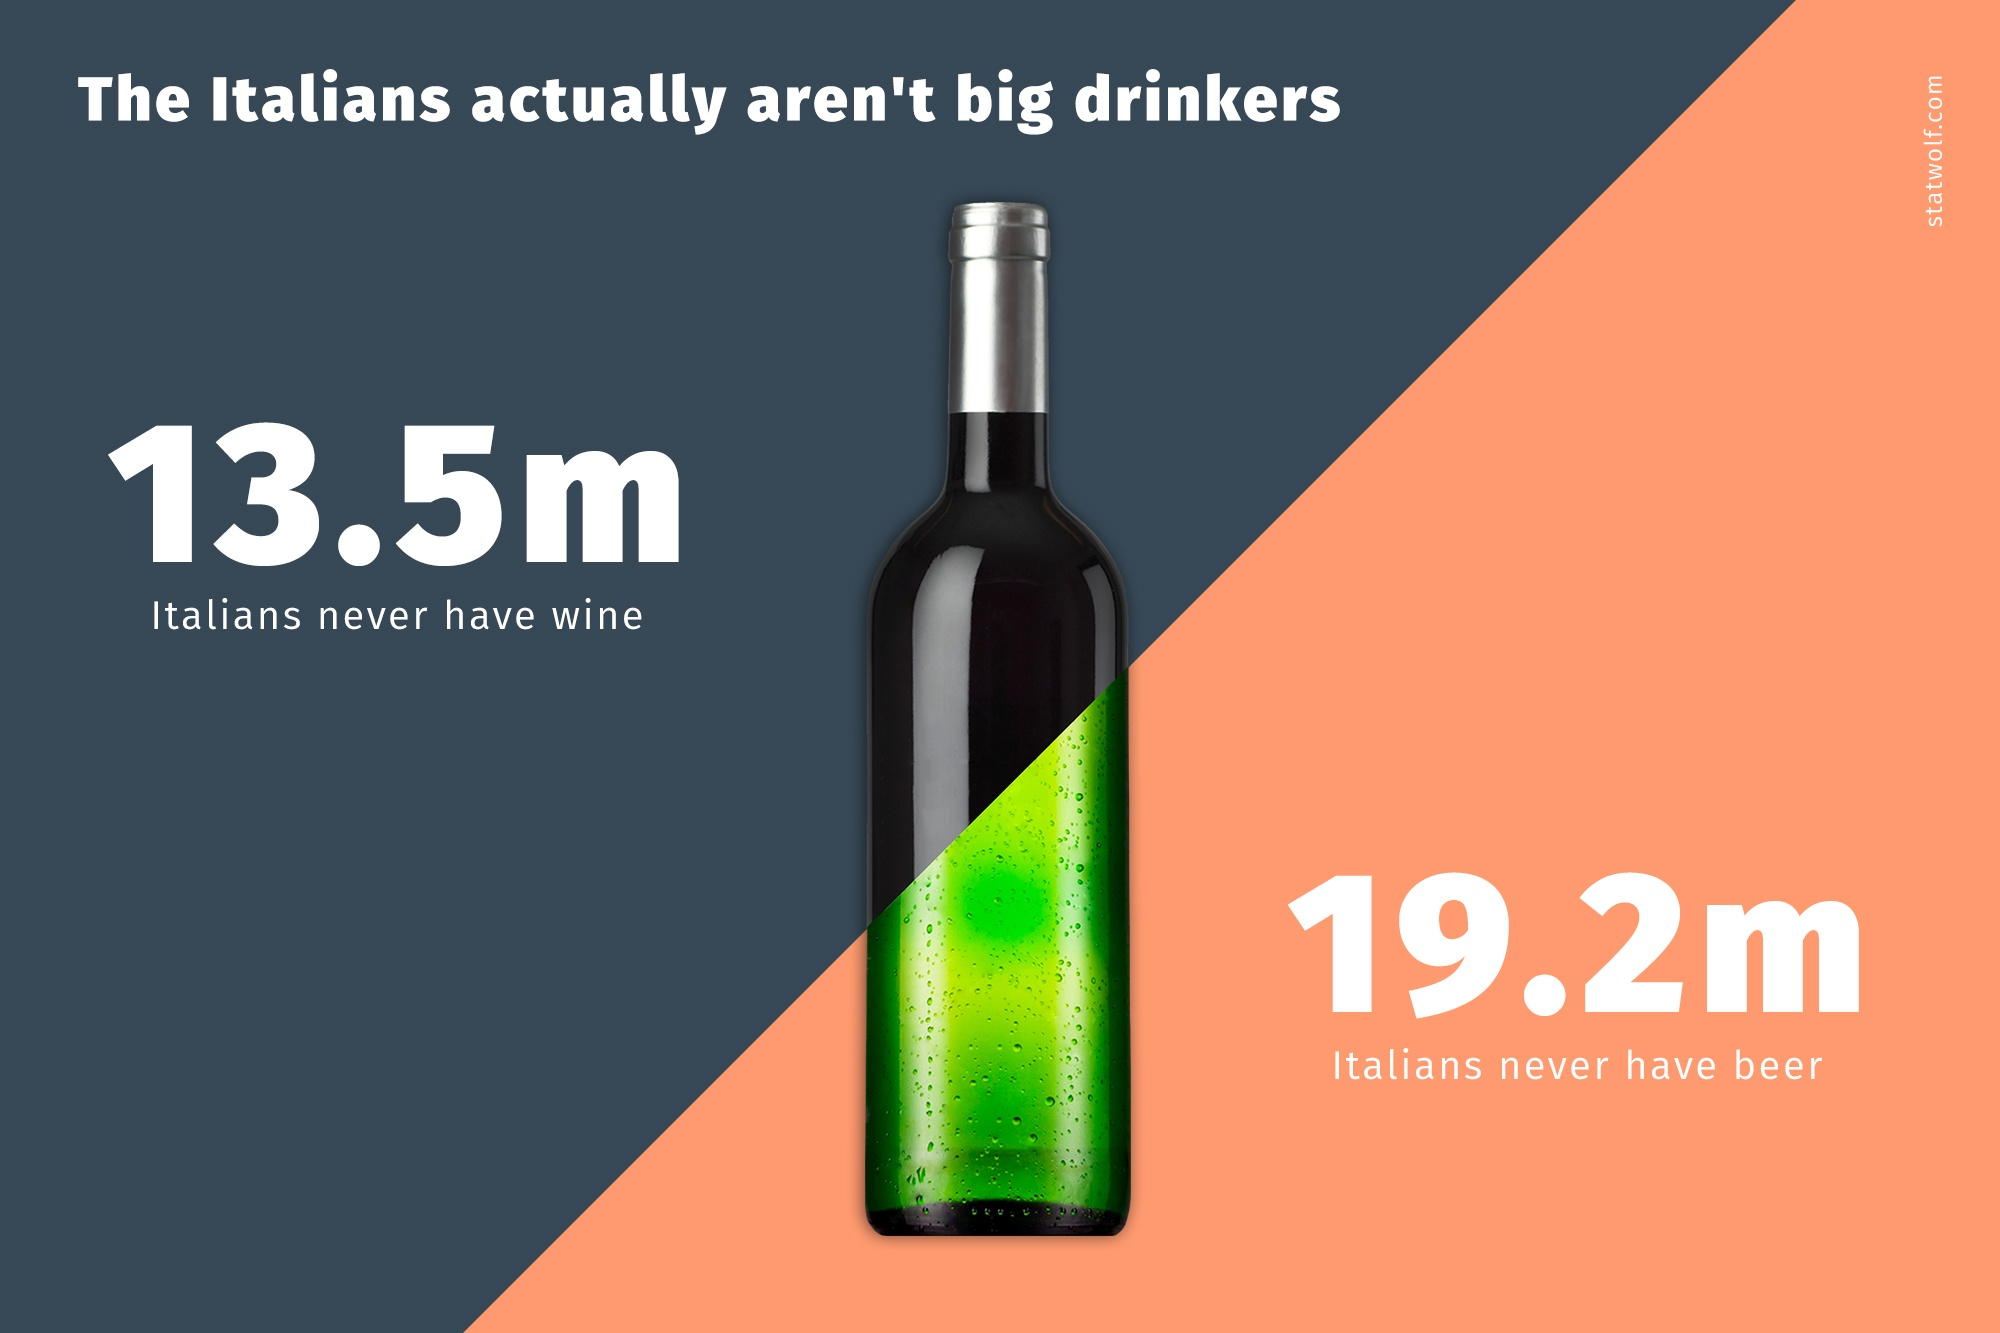 The Italians Actually Aren't Big Drinkers